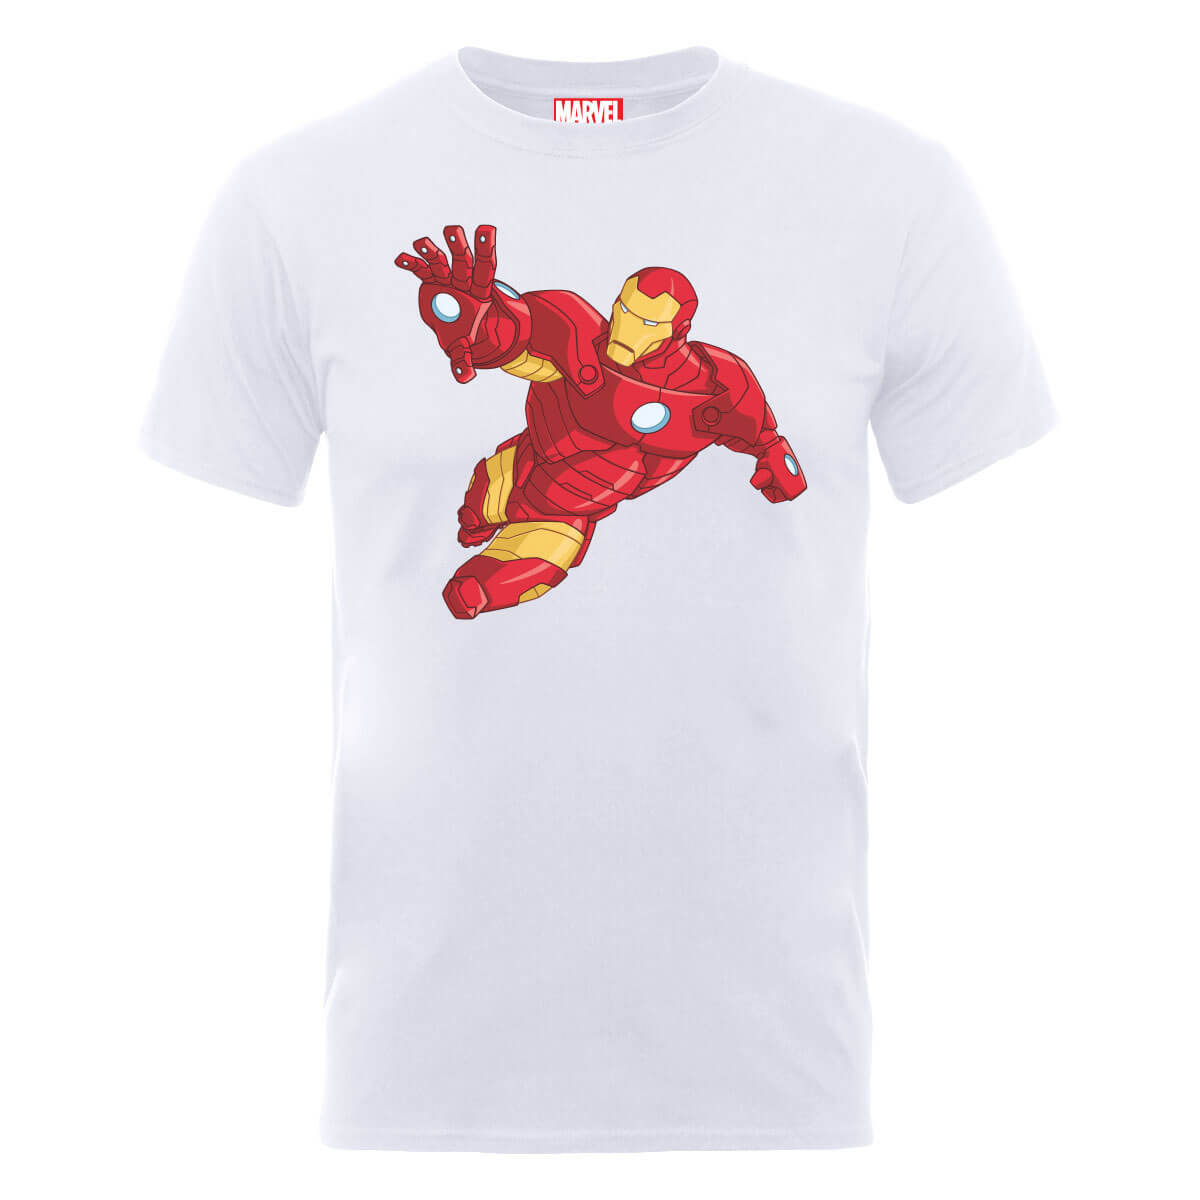 Marvel Avengers Assemble Armoured Iron Man T-Shirt - White